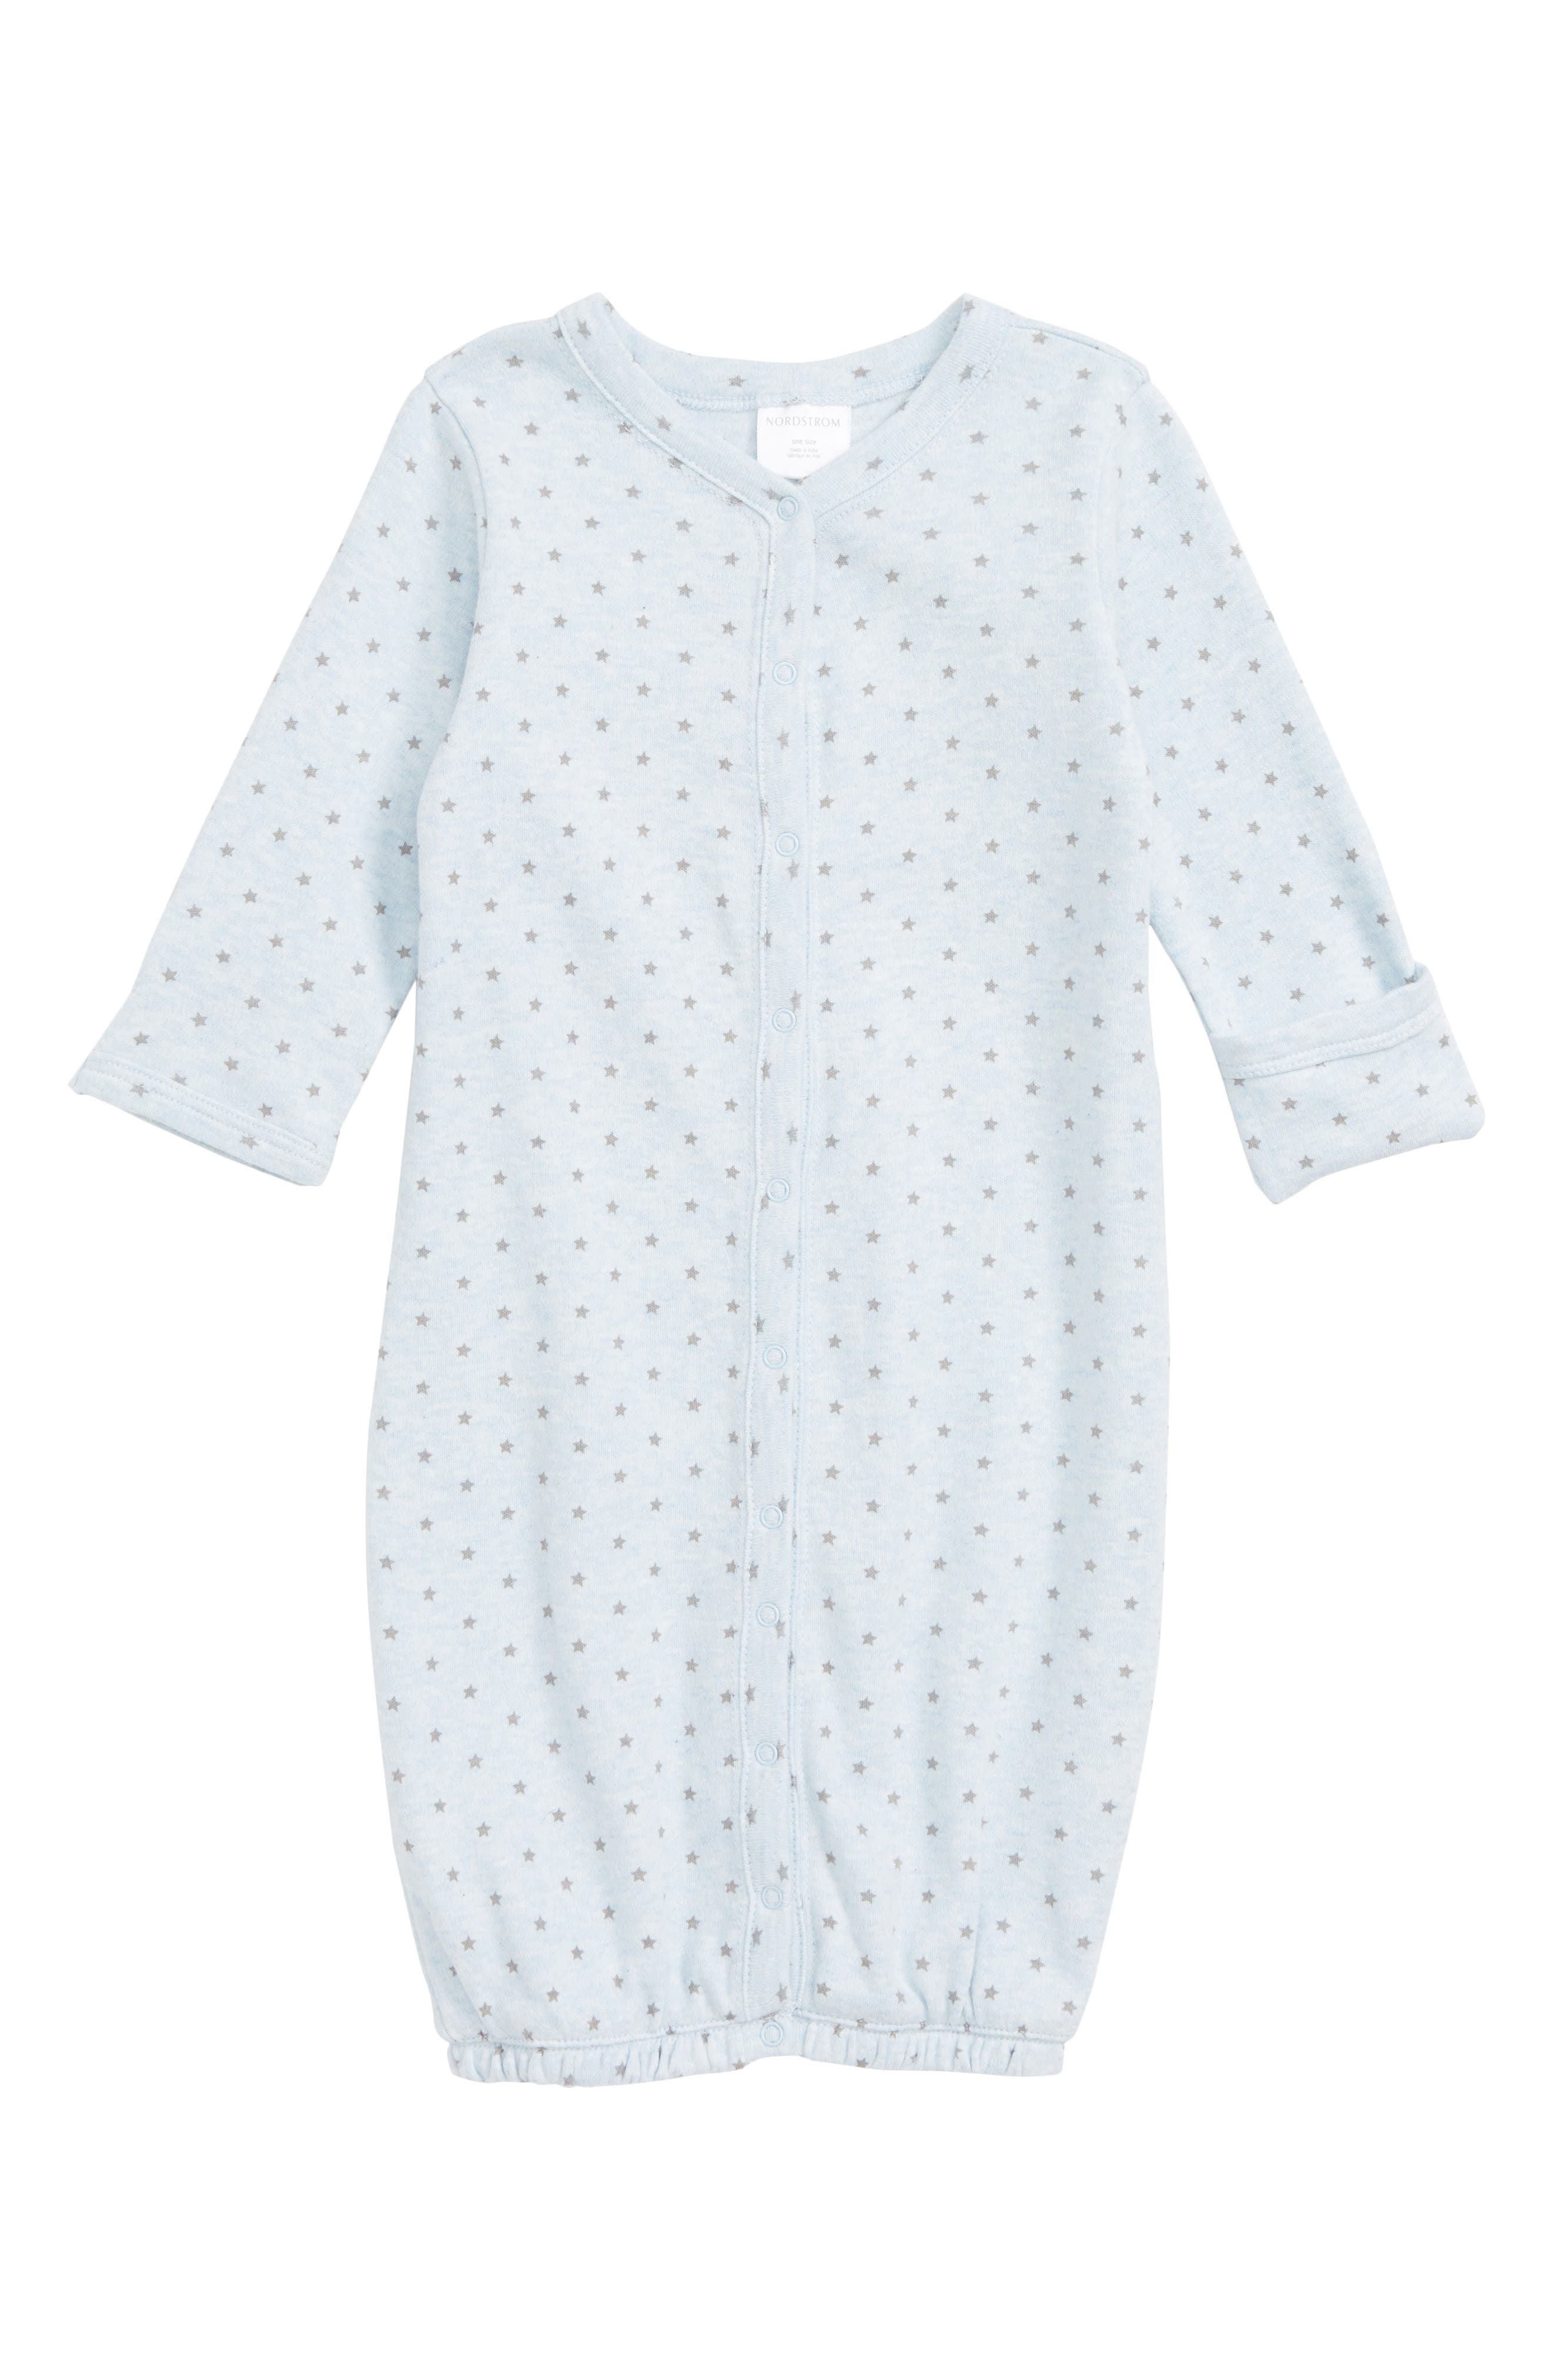 NORDSTROM BABY, Convertible Gown, Main thumbnail 1, color, BLUE PRECIOUS HEATHER STARS